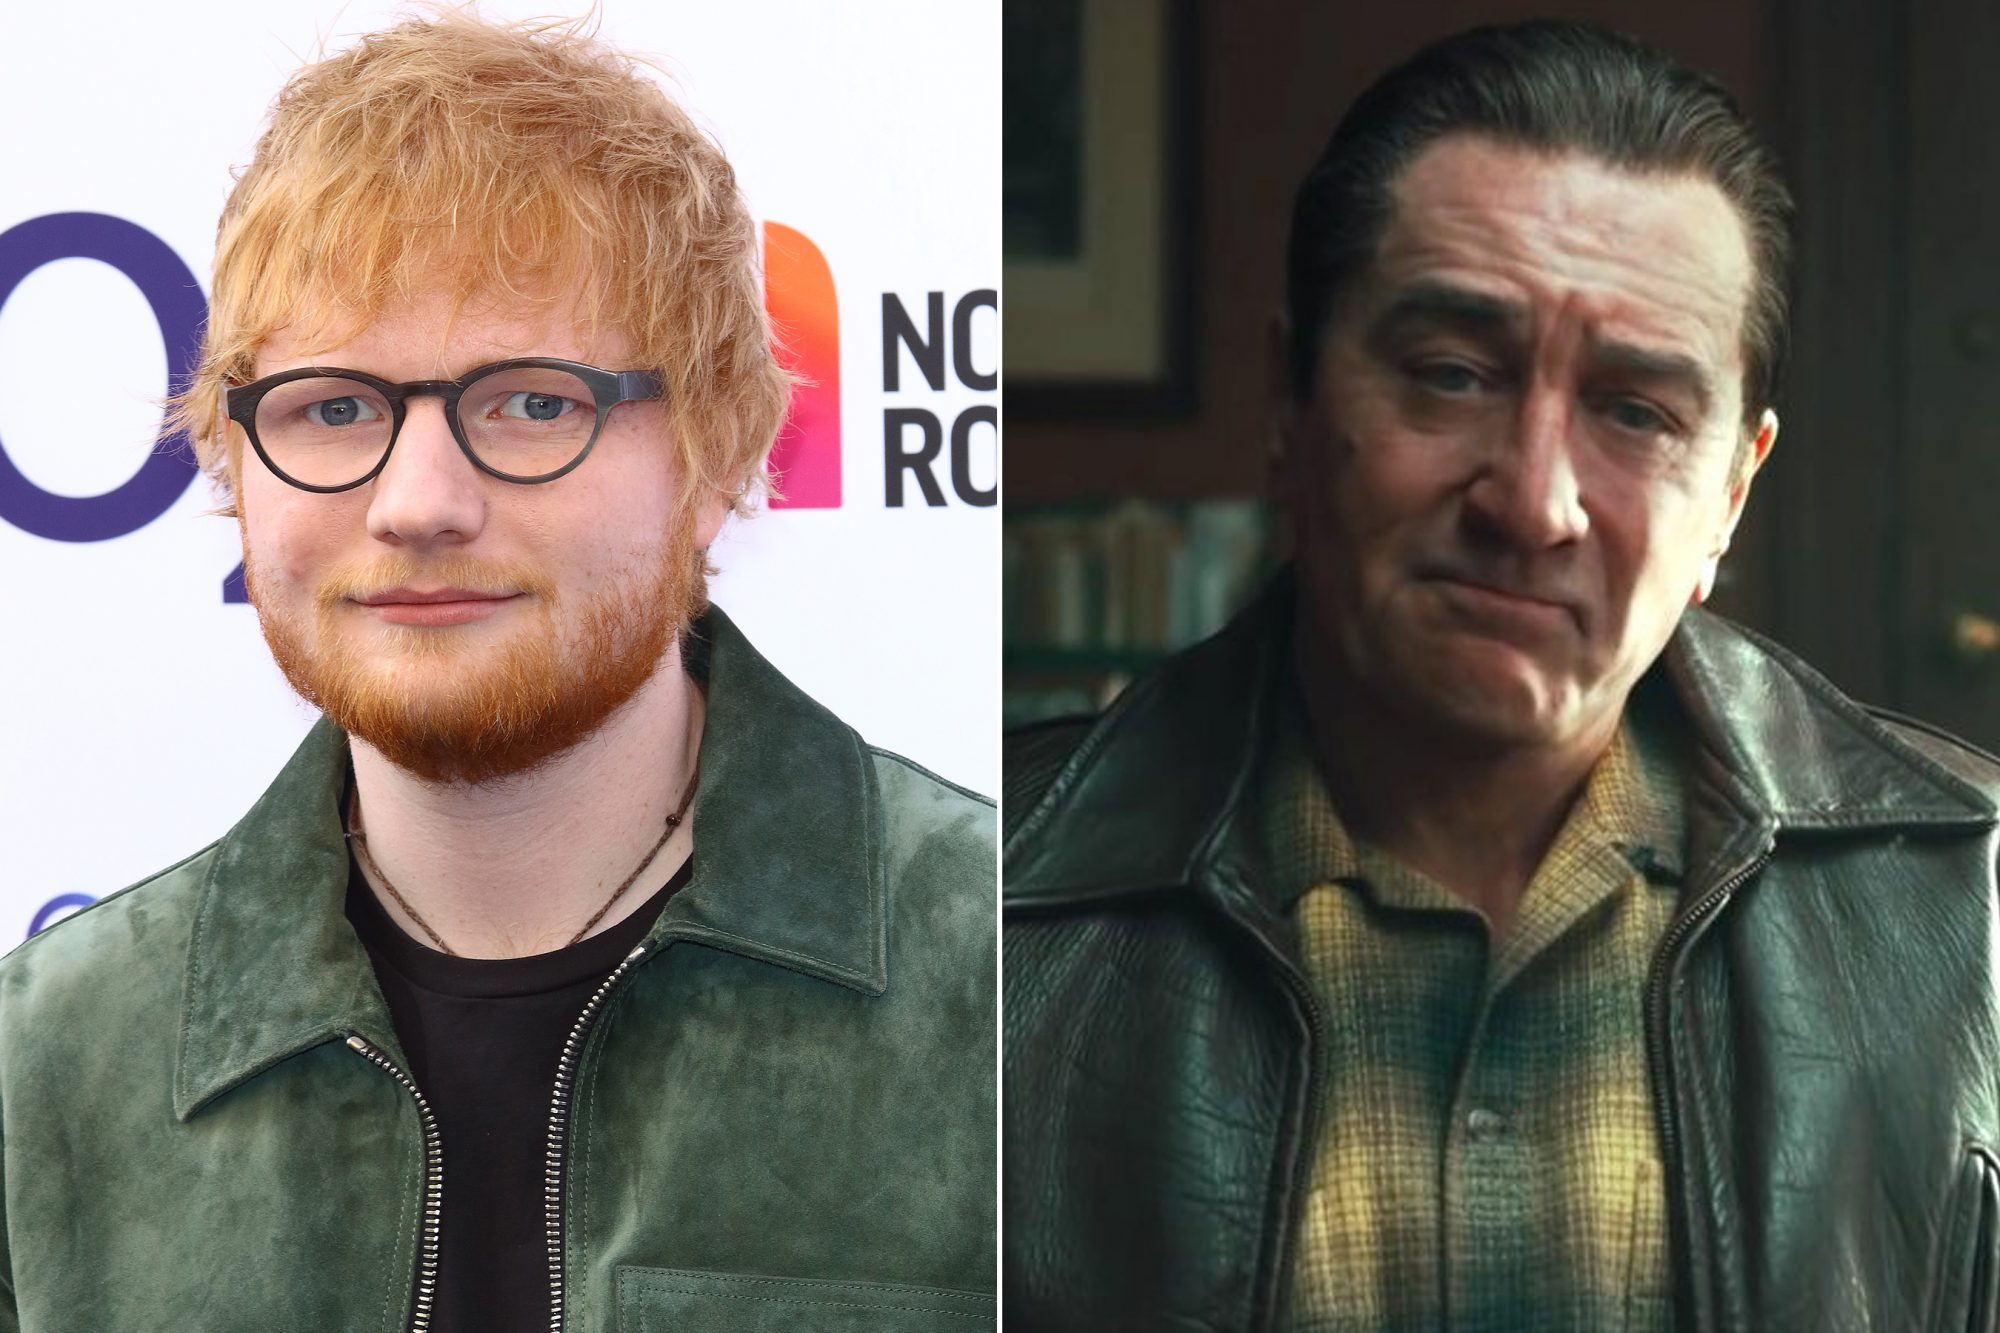 Ed Sheeran / The Irishman